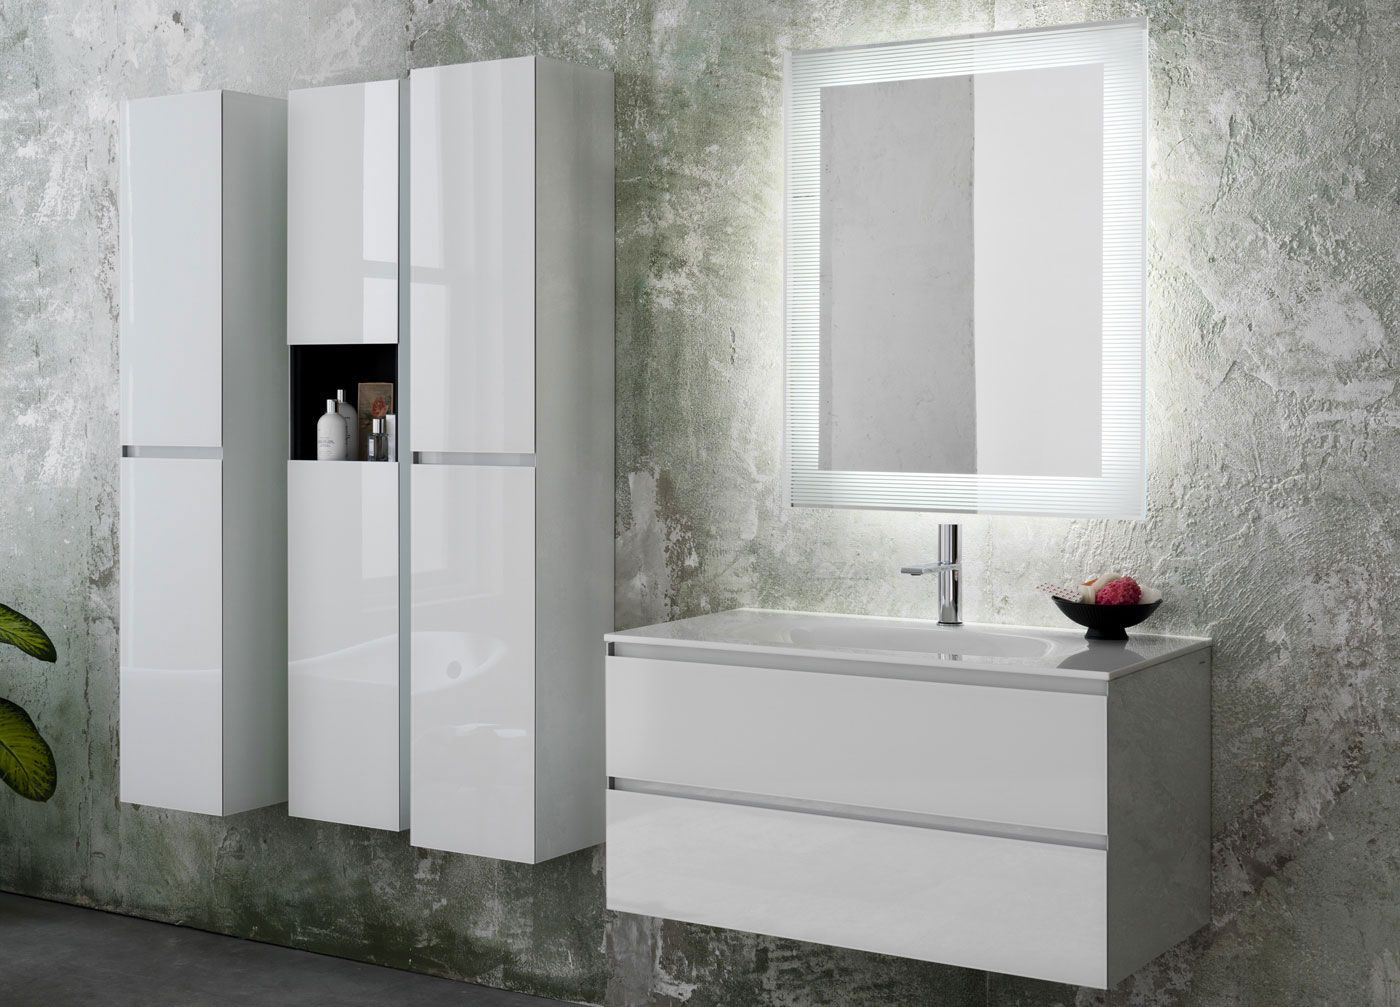 Simple white bath vanity by Artelinea / Domino Collection | Bathroom ...